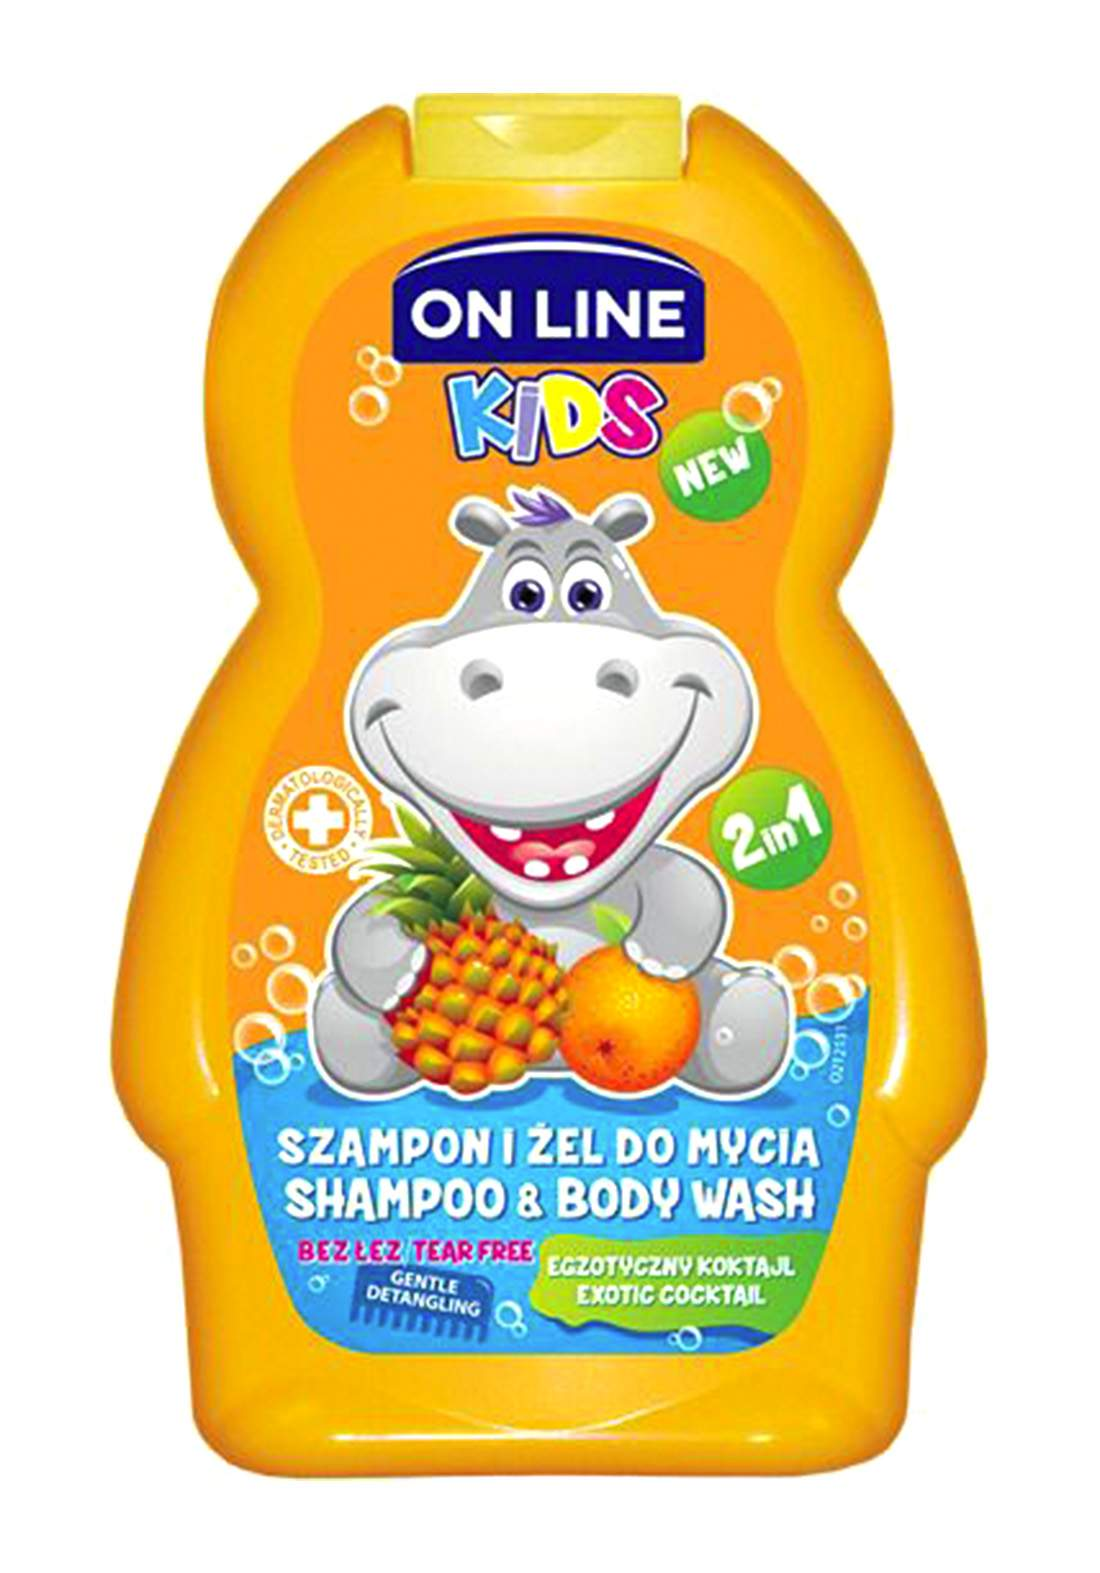 Online exotic cocktail Baby body wash and shampoo 250ml غسول وشامبو للاطفال